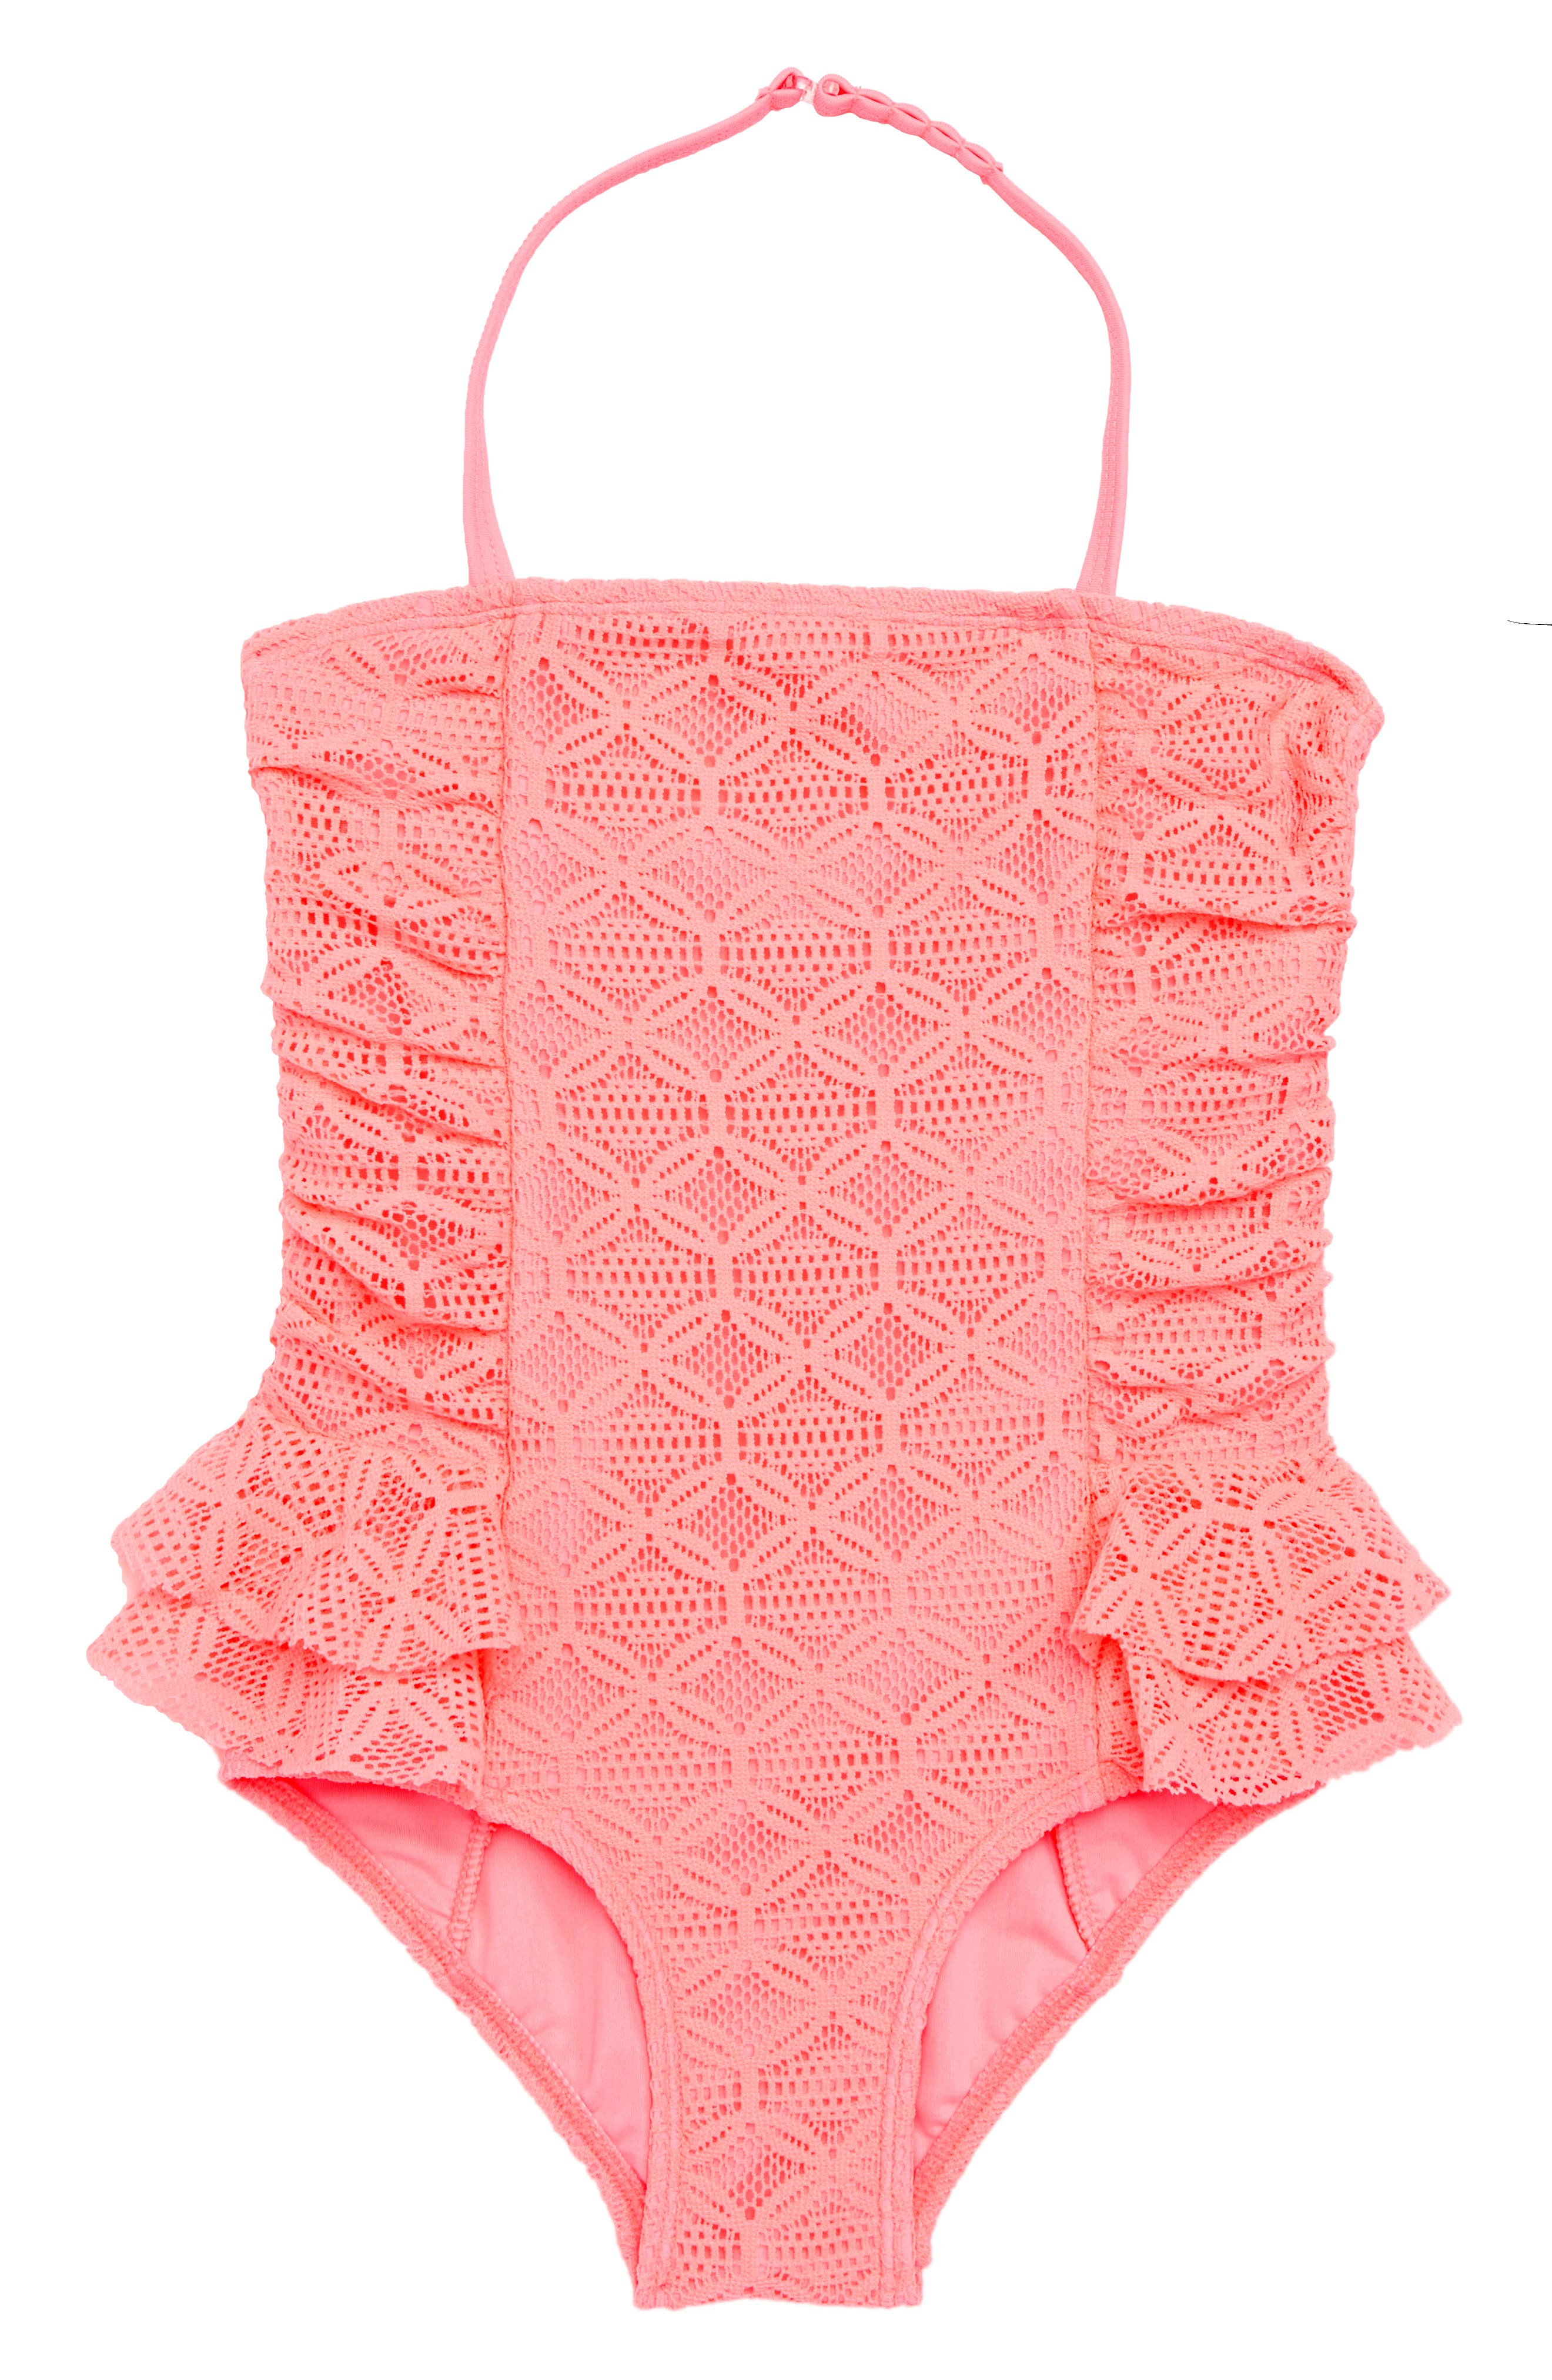 Kitty Lace One-Piece Swimsuit,                             Main thumbnail 1, color,                             CORAL